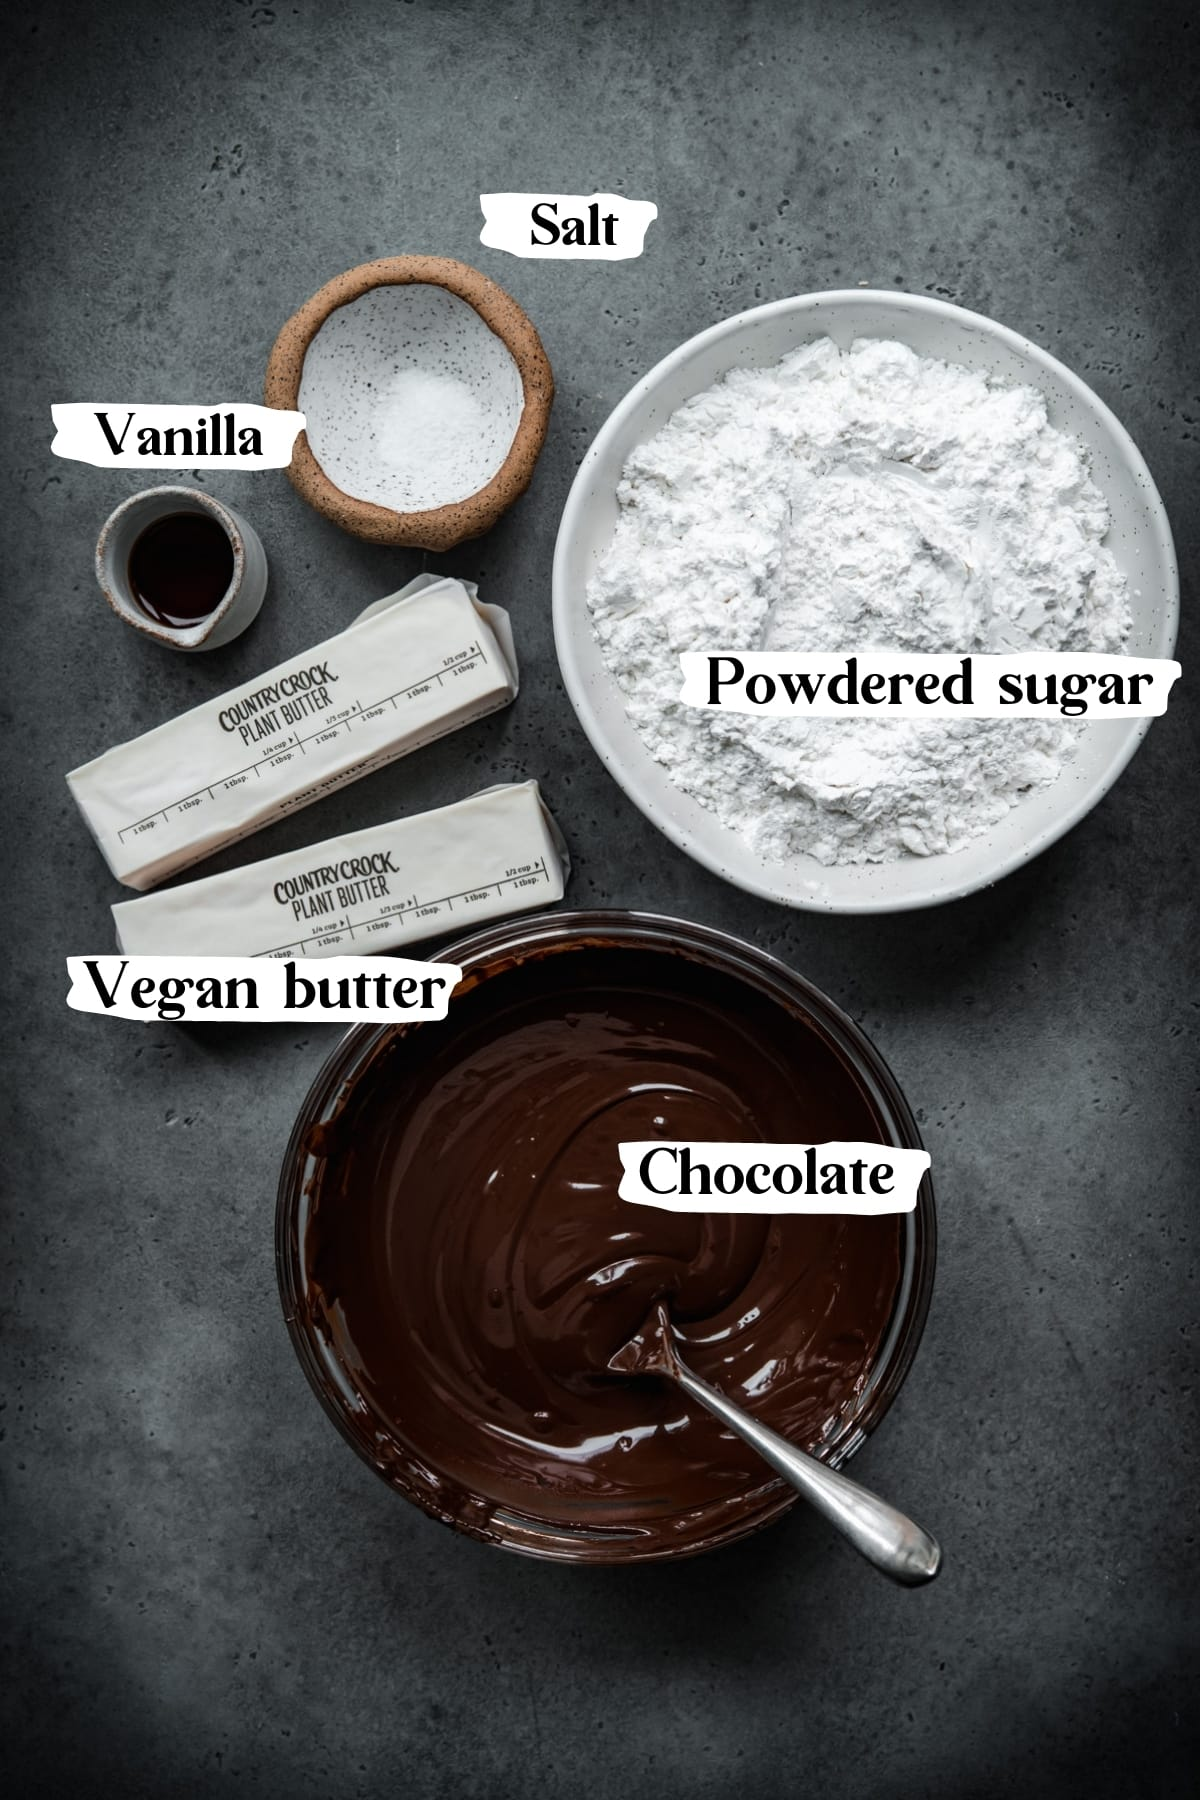 overhead view of ingredients for vegan chocolate buttercream with text labels.